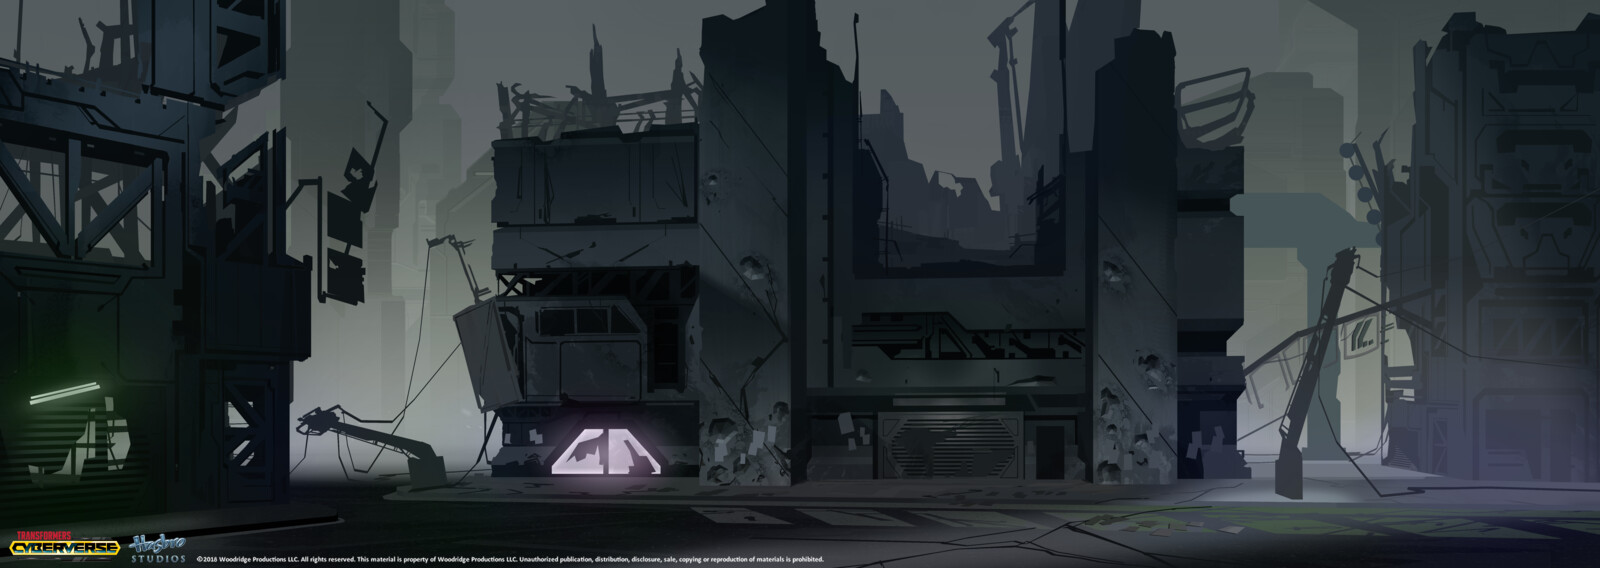 Key background based on a concept by Nicholas Mastello. You can check more of Nick's works here: www.artstation.com/thatnickid